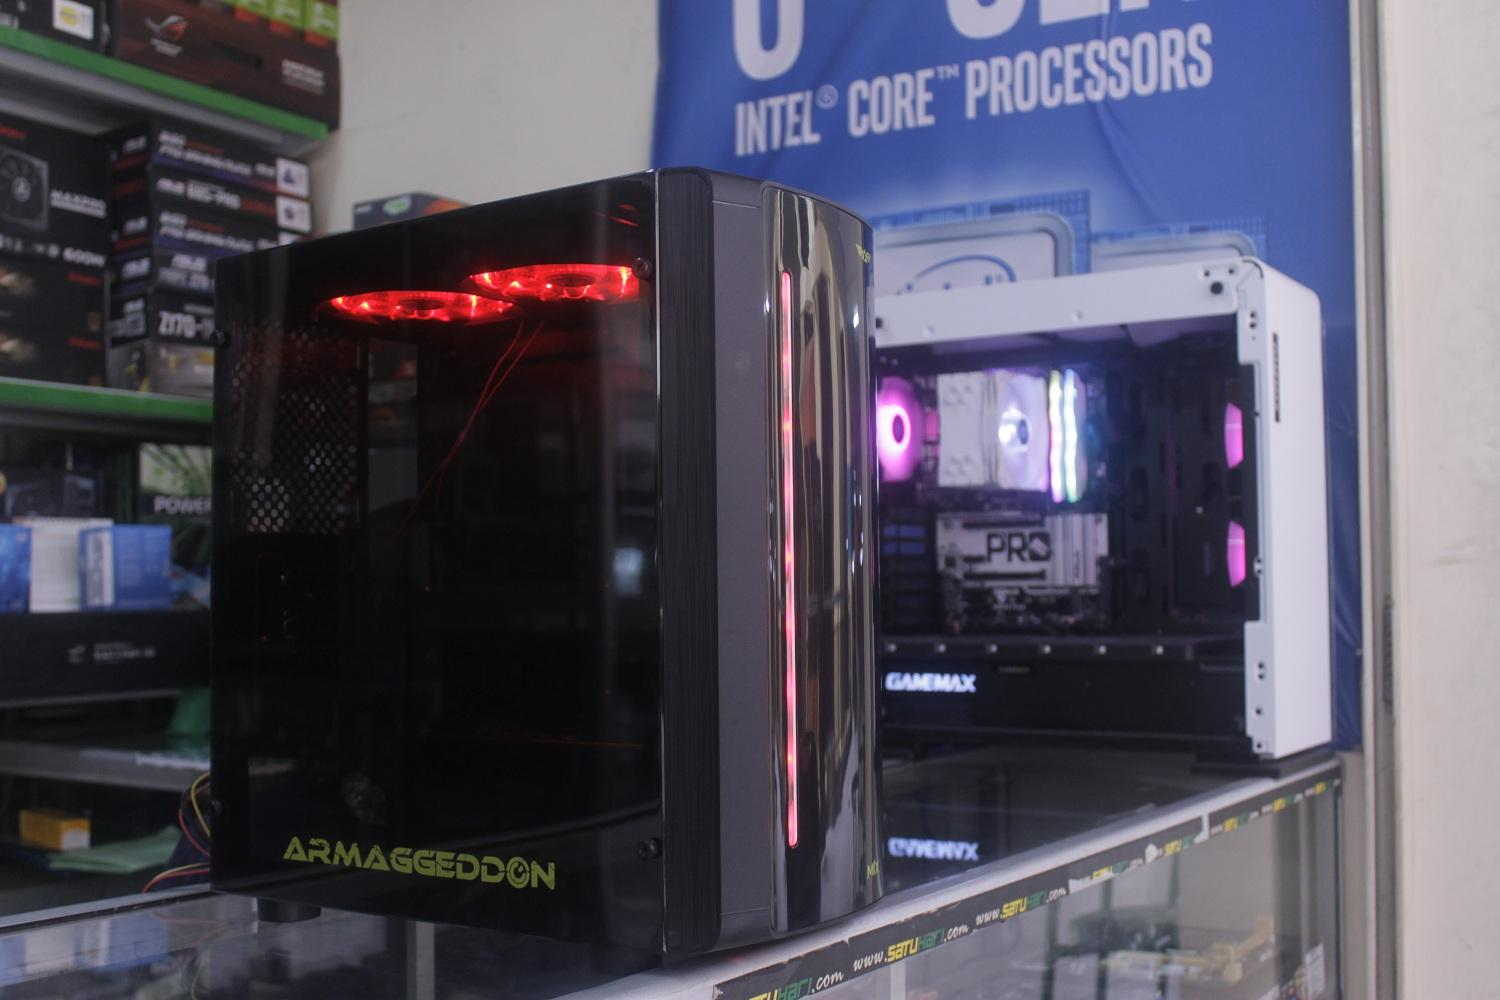 PC Design Core i5 - Vga Gt1030 2gb ddr5 - Ram 8gb ddr3